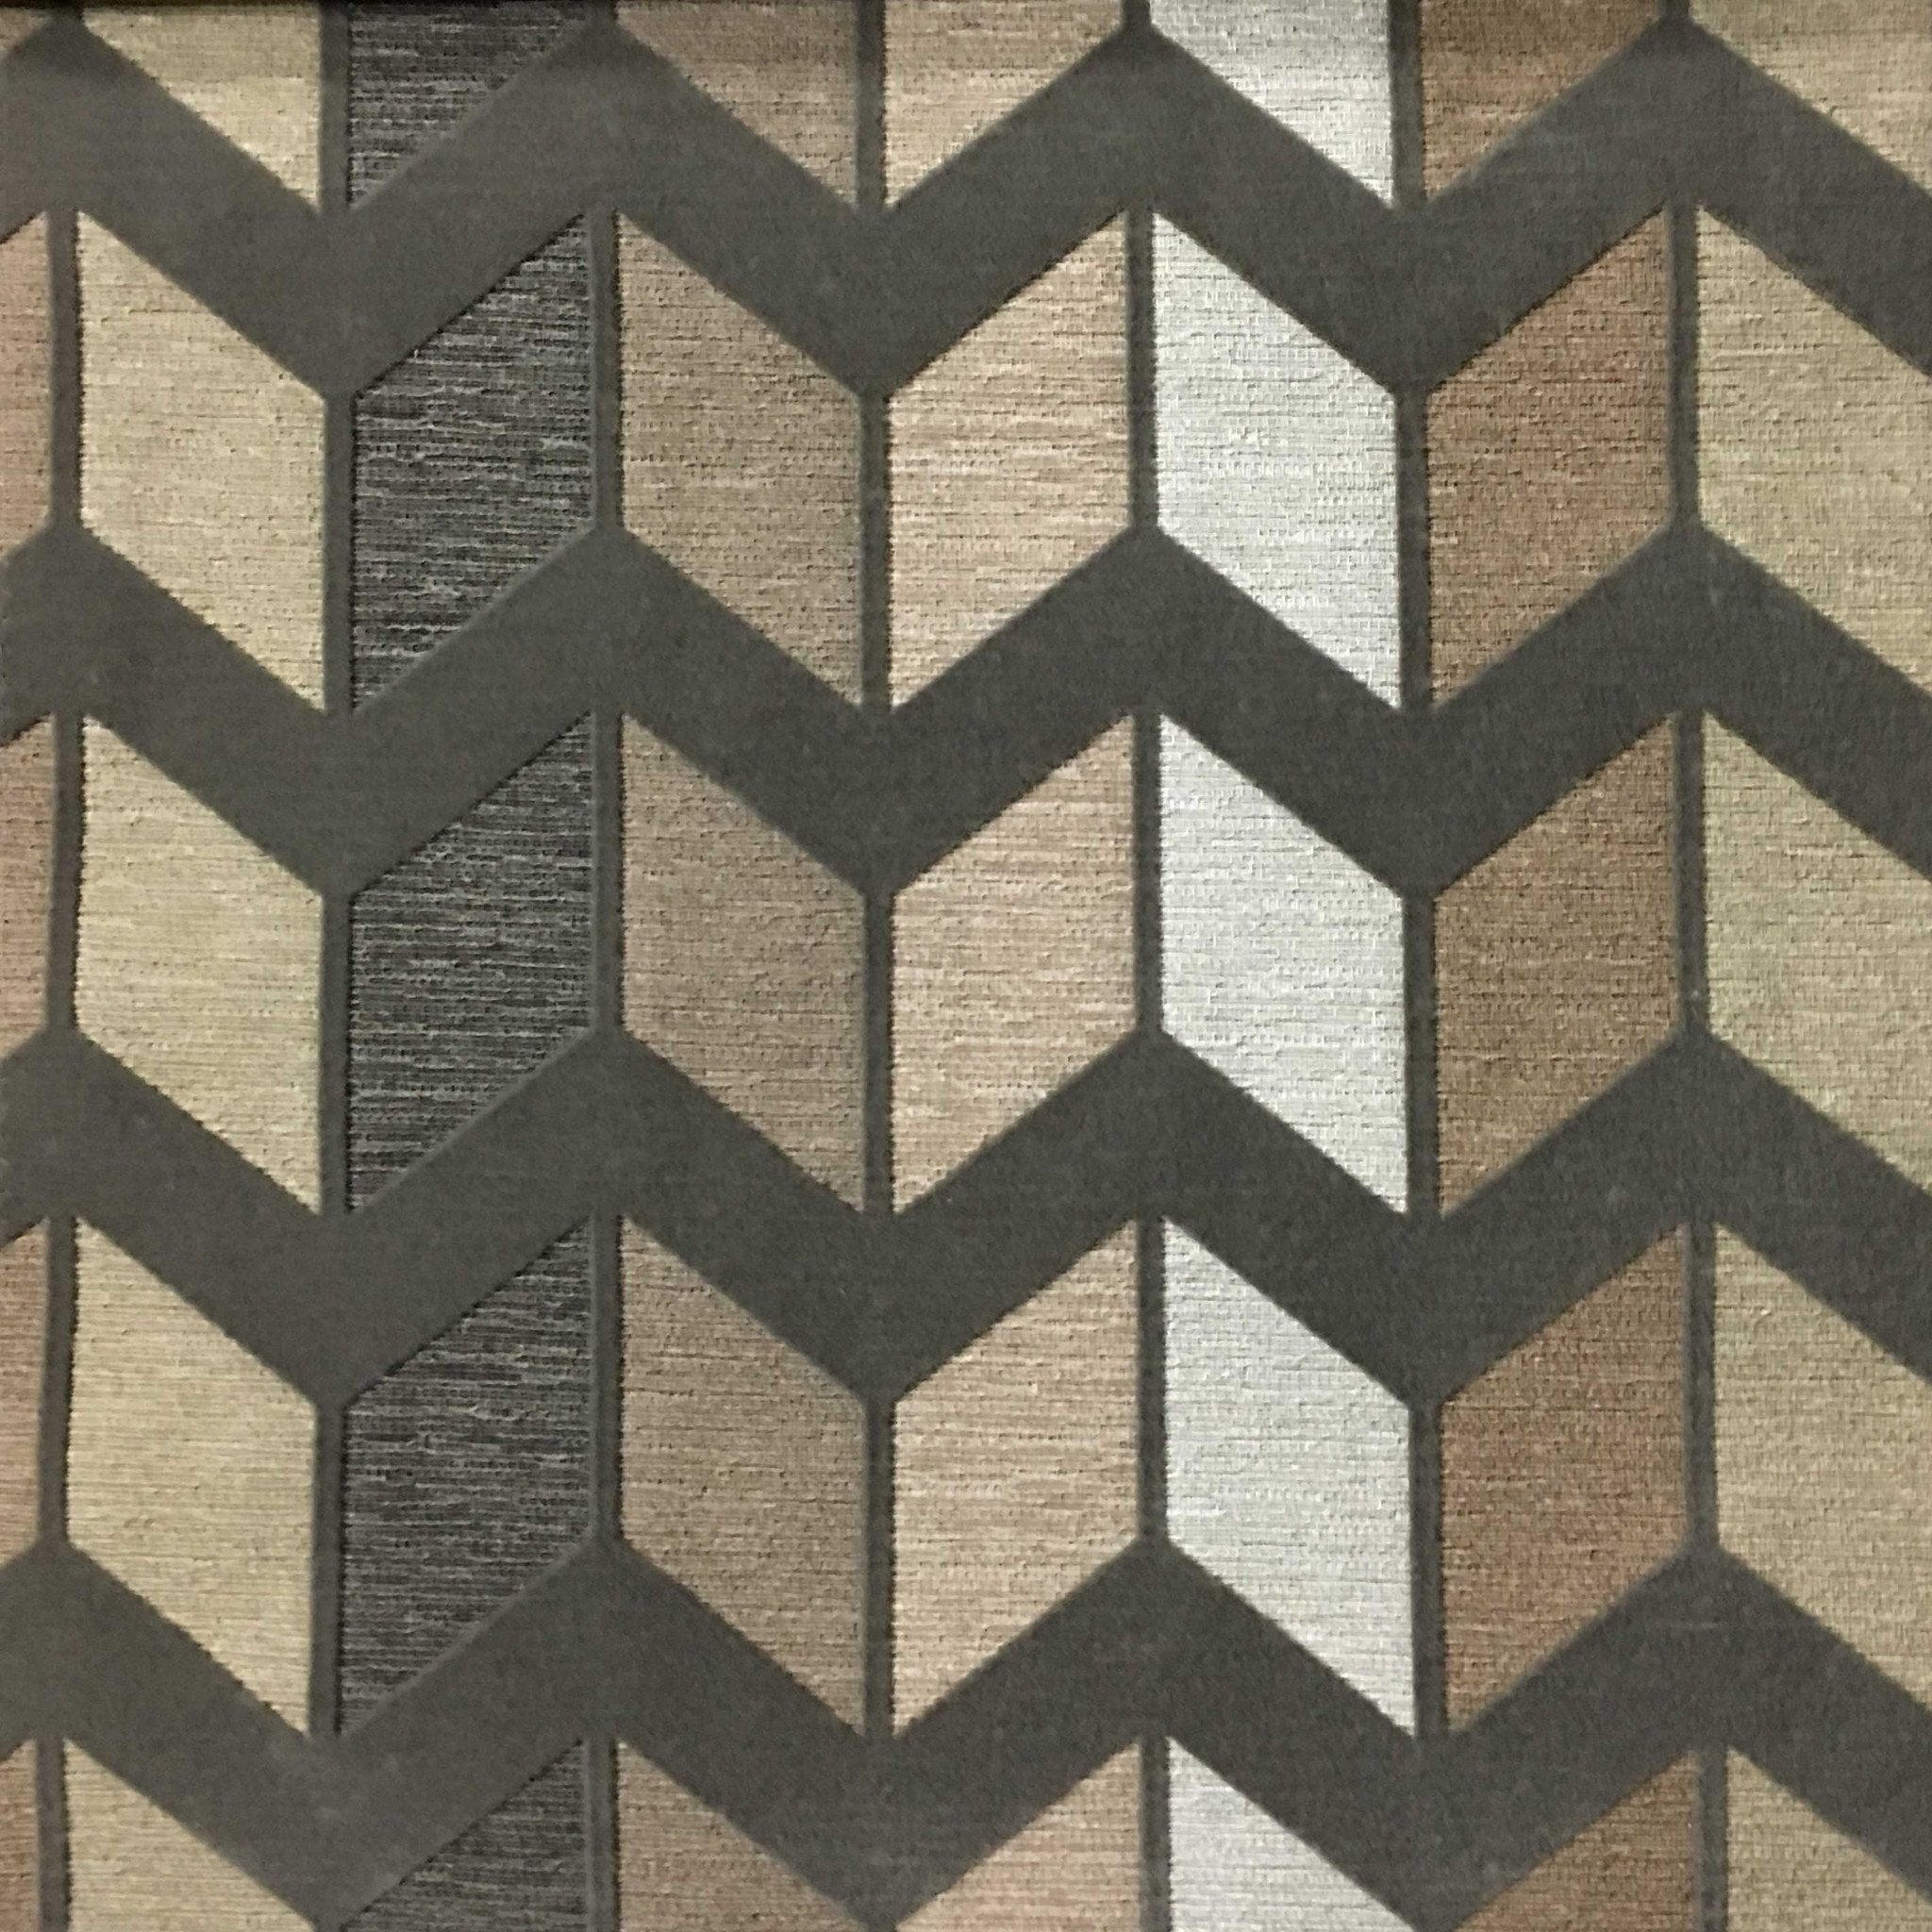 Chevron print fabric by the yard -  Ziba Modern Texture Chevron Pattern Cotton Polyester Blend Upholstery Fabric By The Yard Available